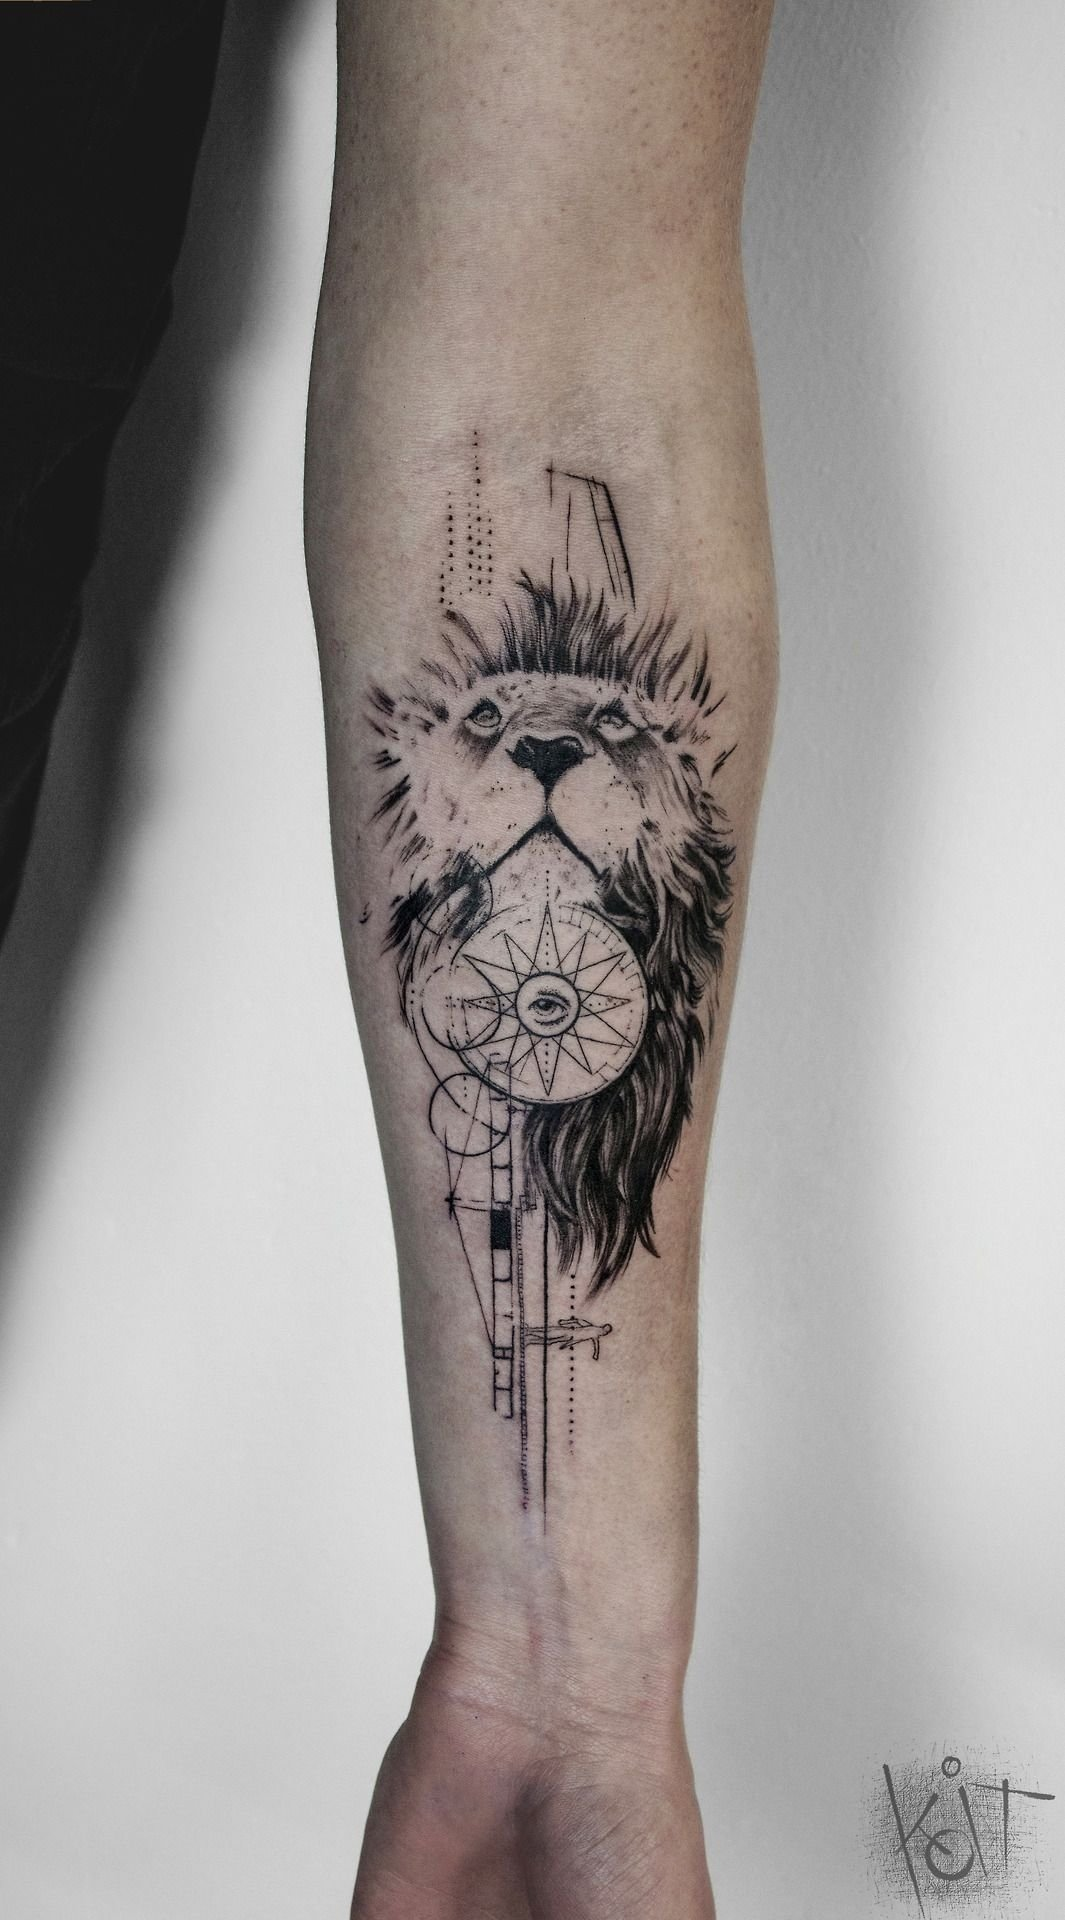 by koit, berlin. forearm black tattoo - lion, compass and illuminati